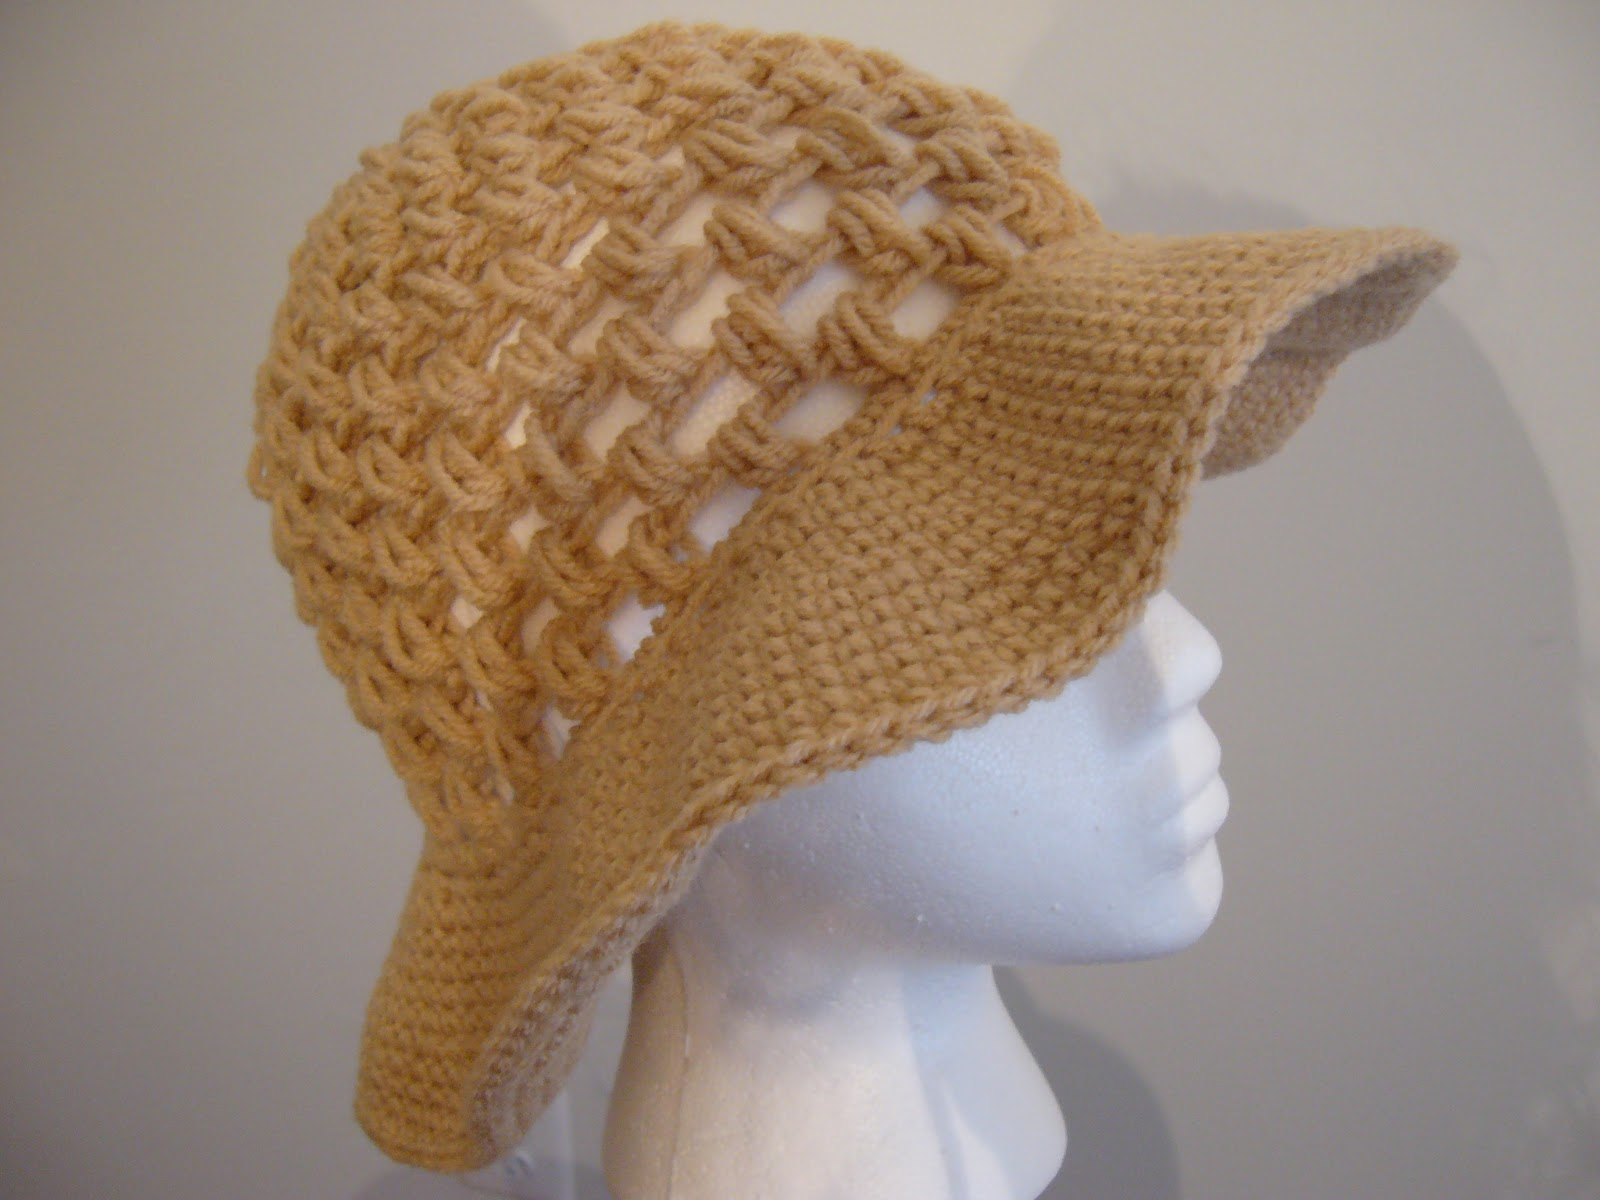 Free Crochet Newborn Sun Hat Pattern : FREE CROCHET SUMMER HAT PATTERNS - Crochet and Knitting ...